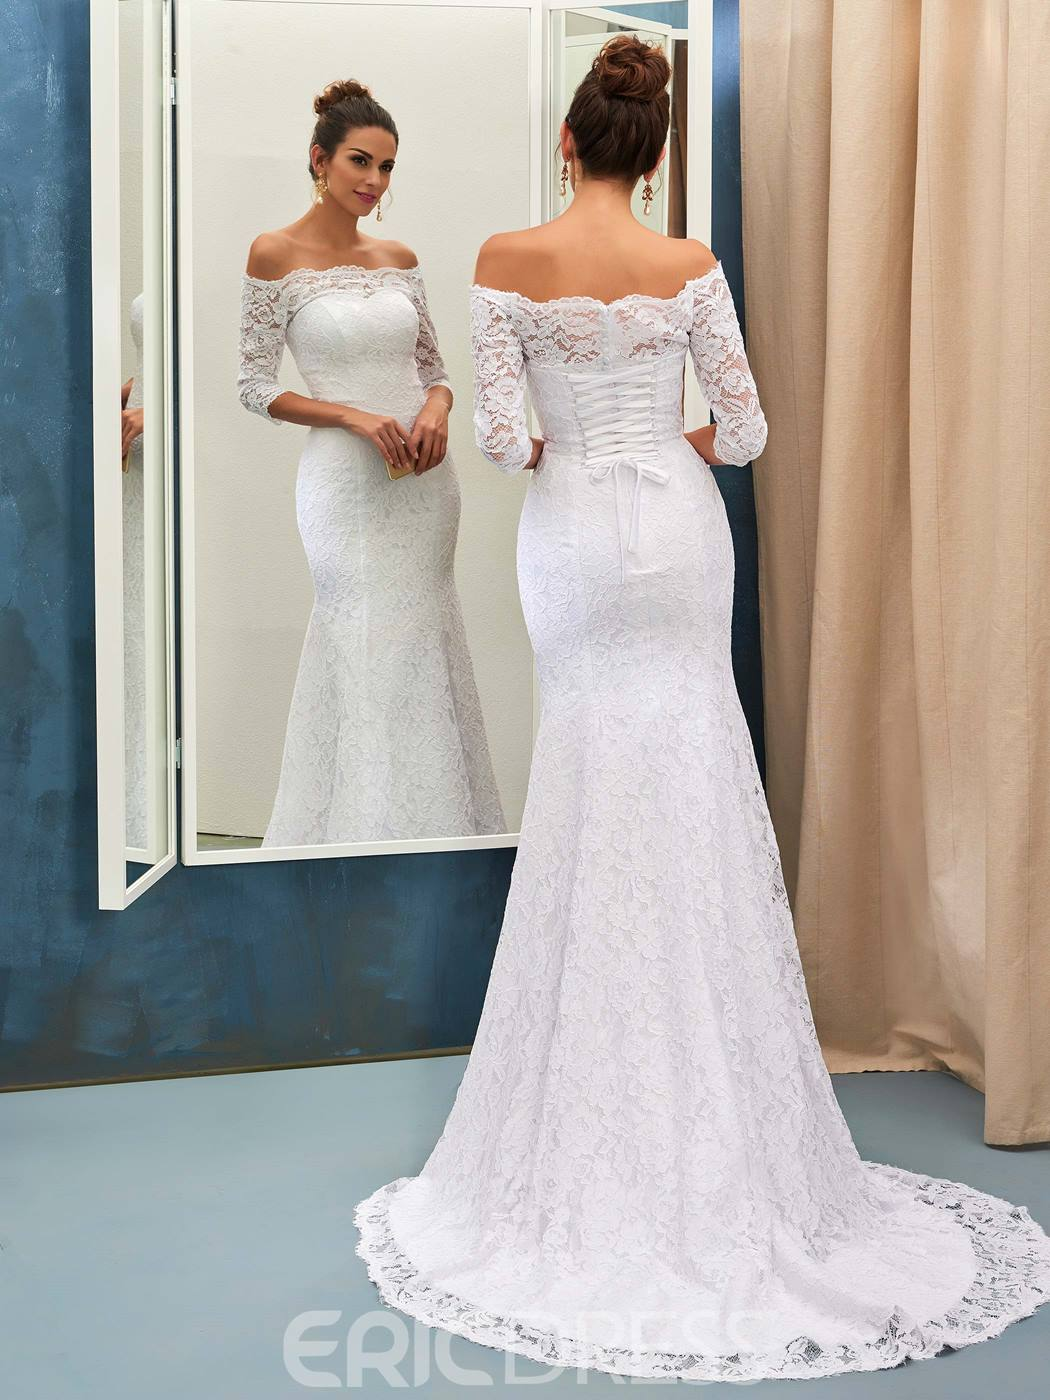 Ericdress lace mermaid off the shoulder wedding dress with sleeves junglespirit Gallery